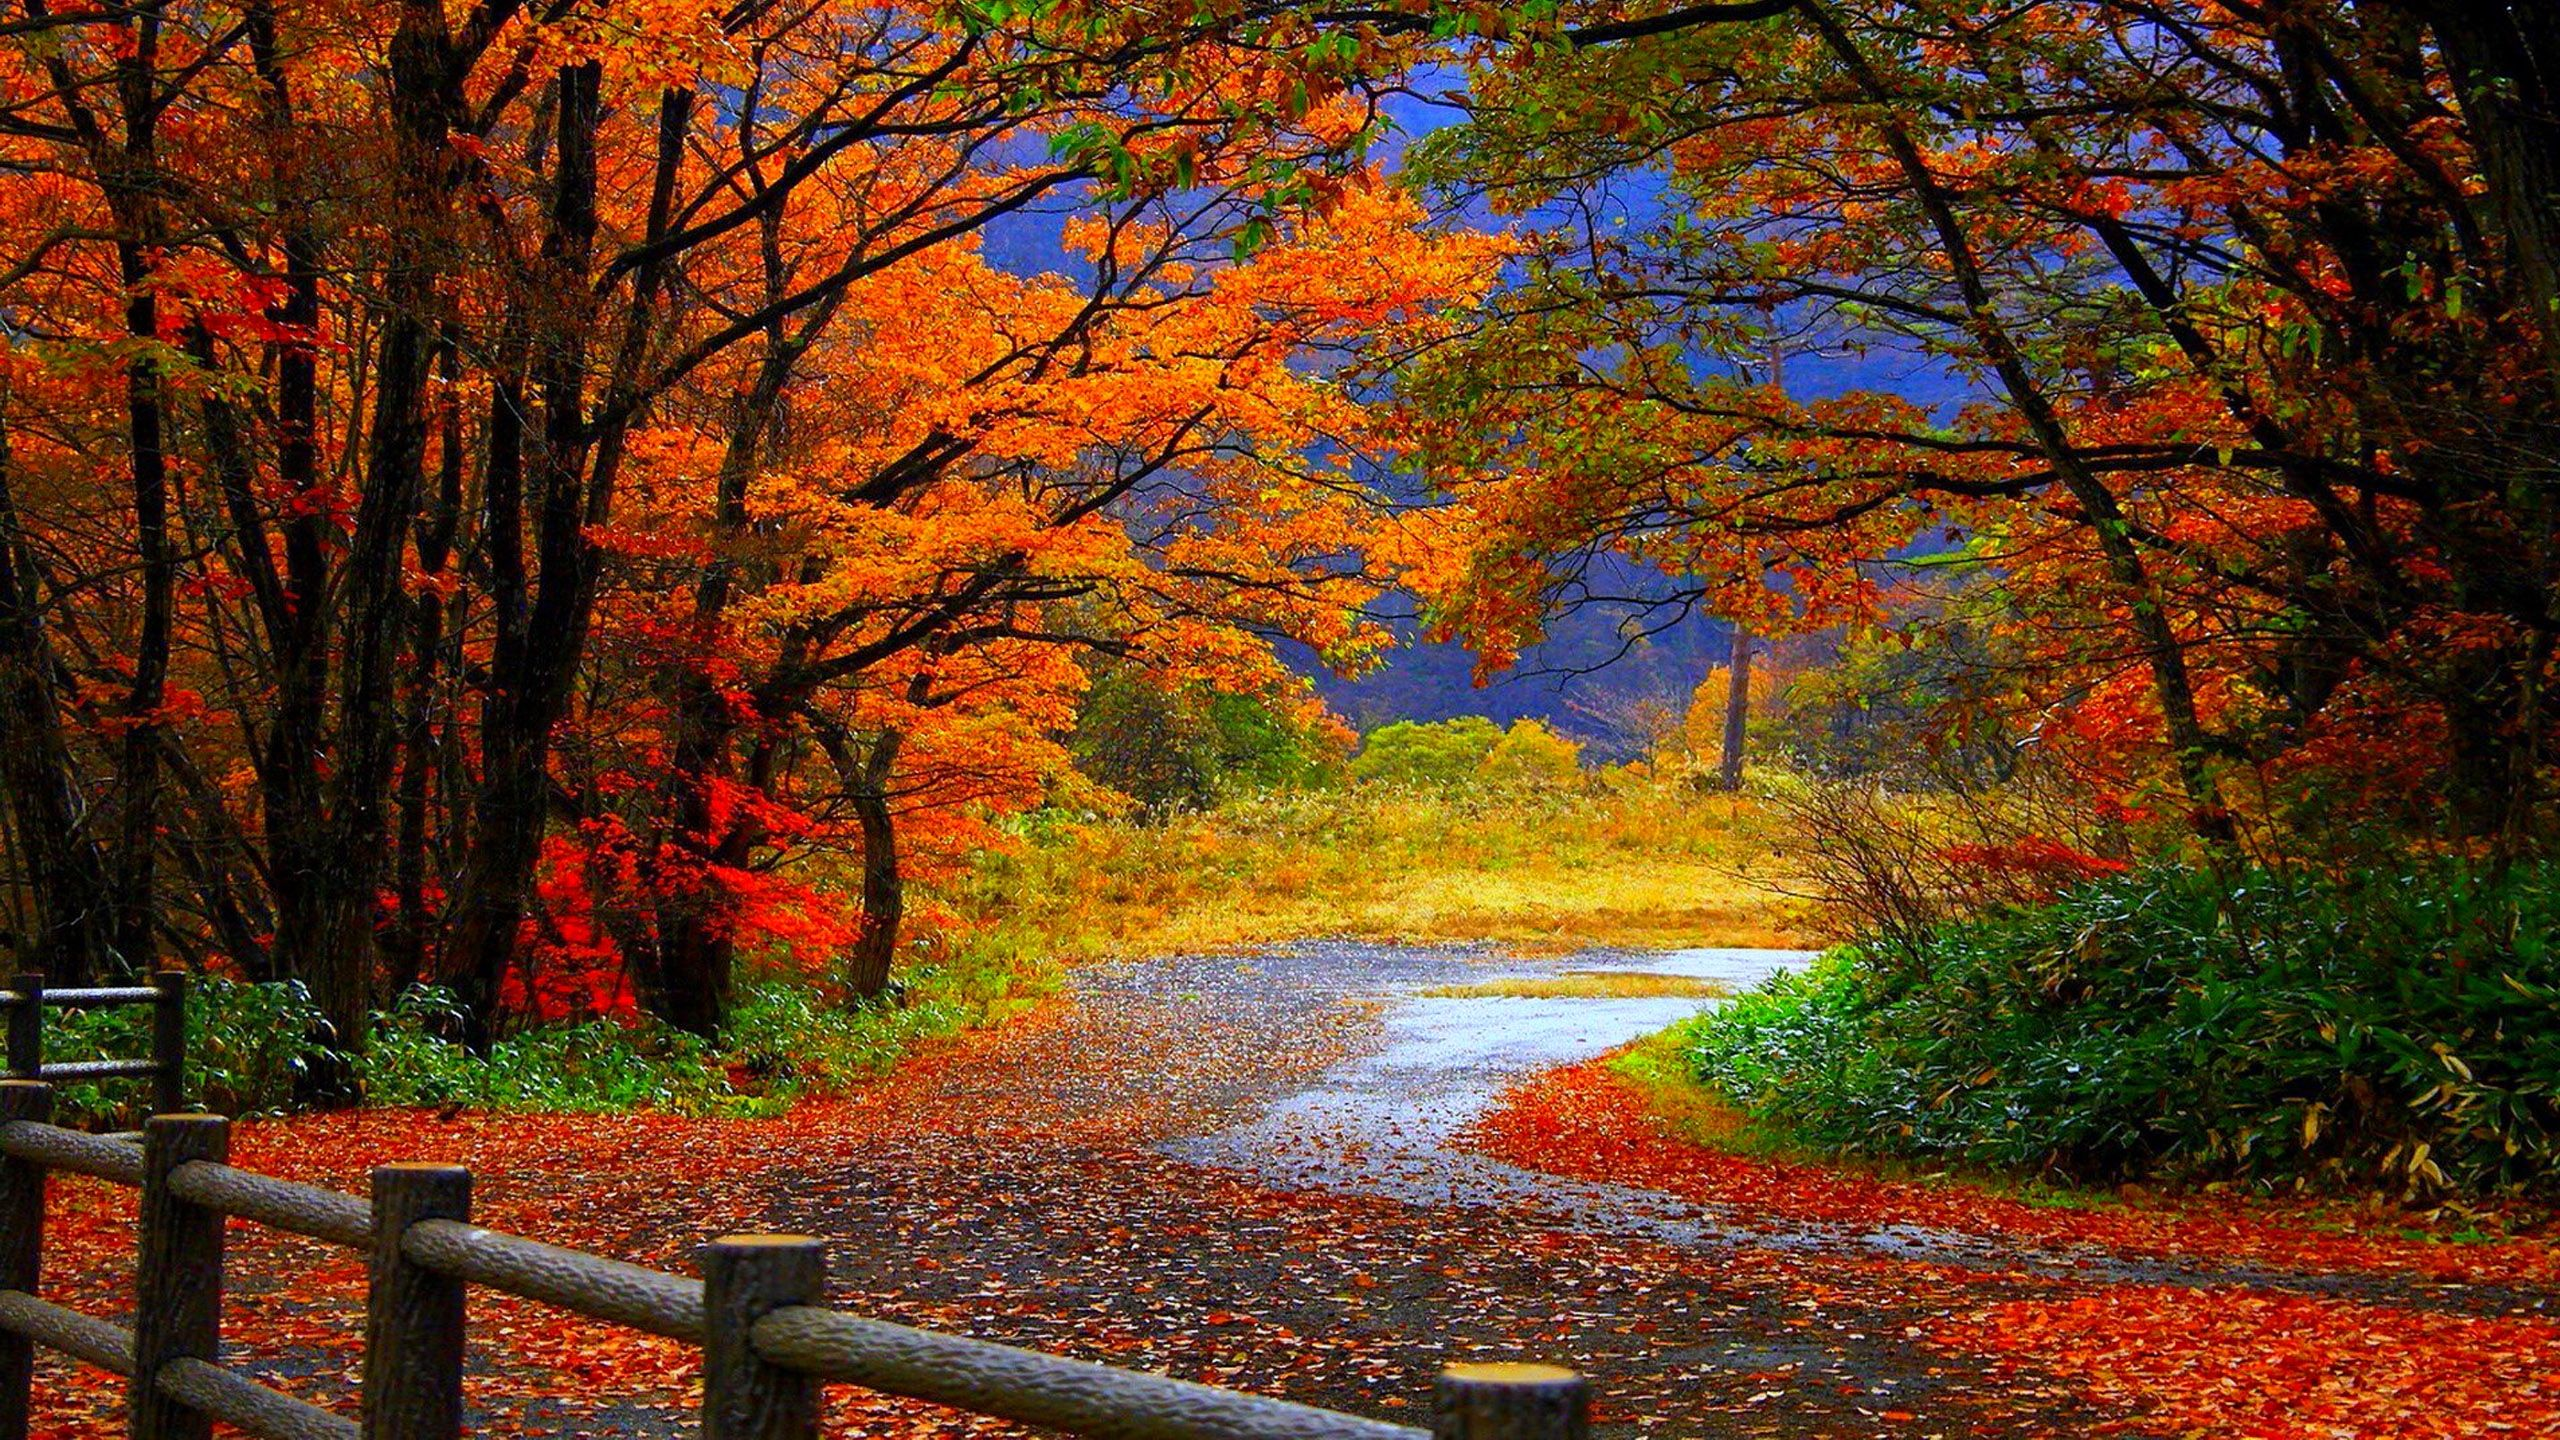 Fall Wallpaper High Definition Scenery Wallpaper Landscape Wallpaper Desktop Wallpaper Fall